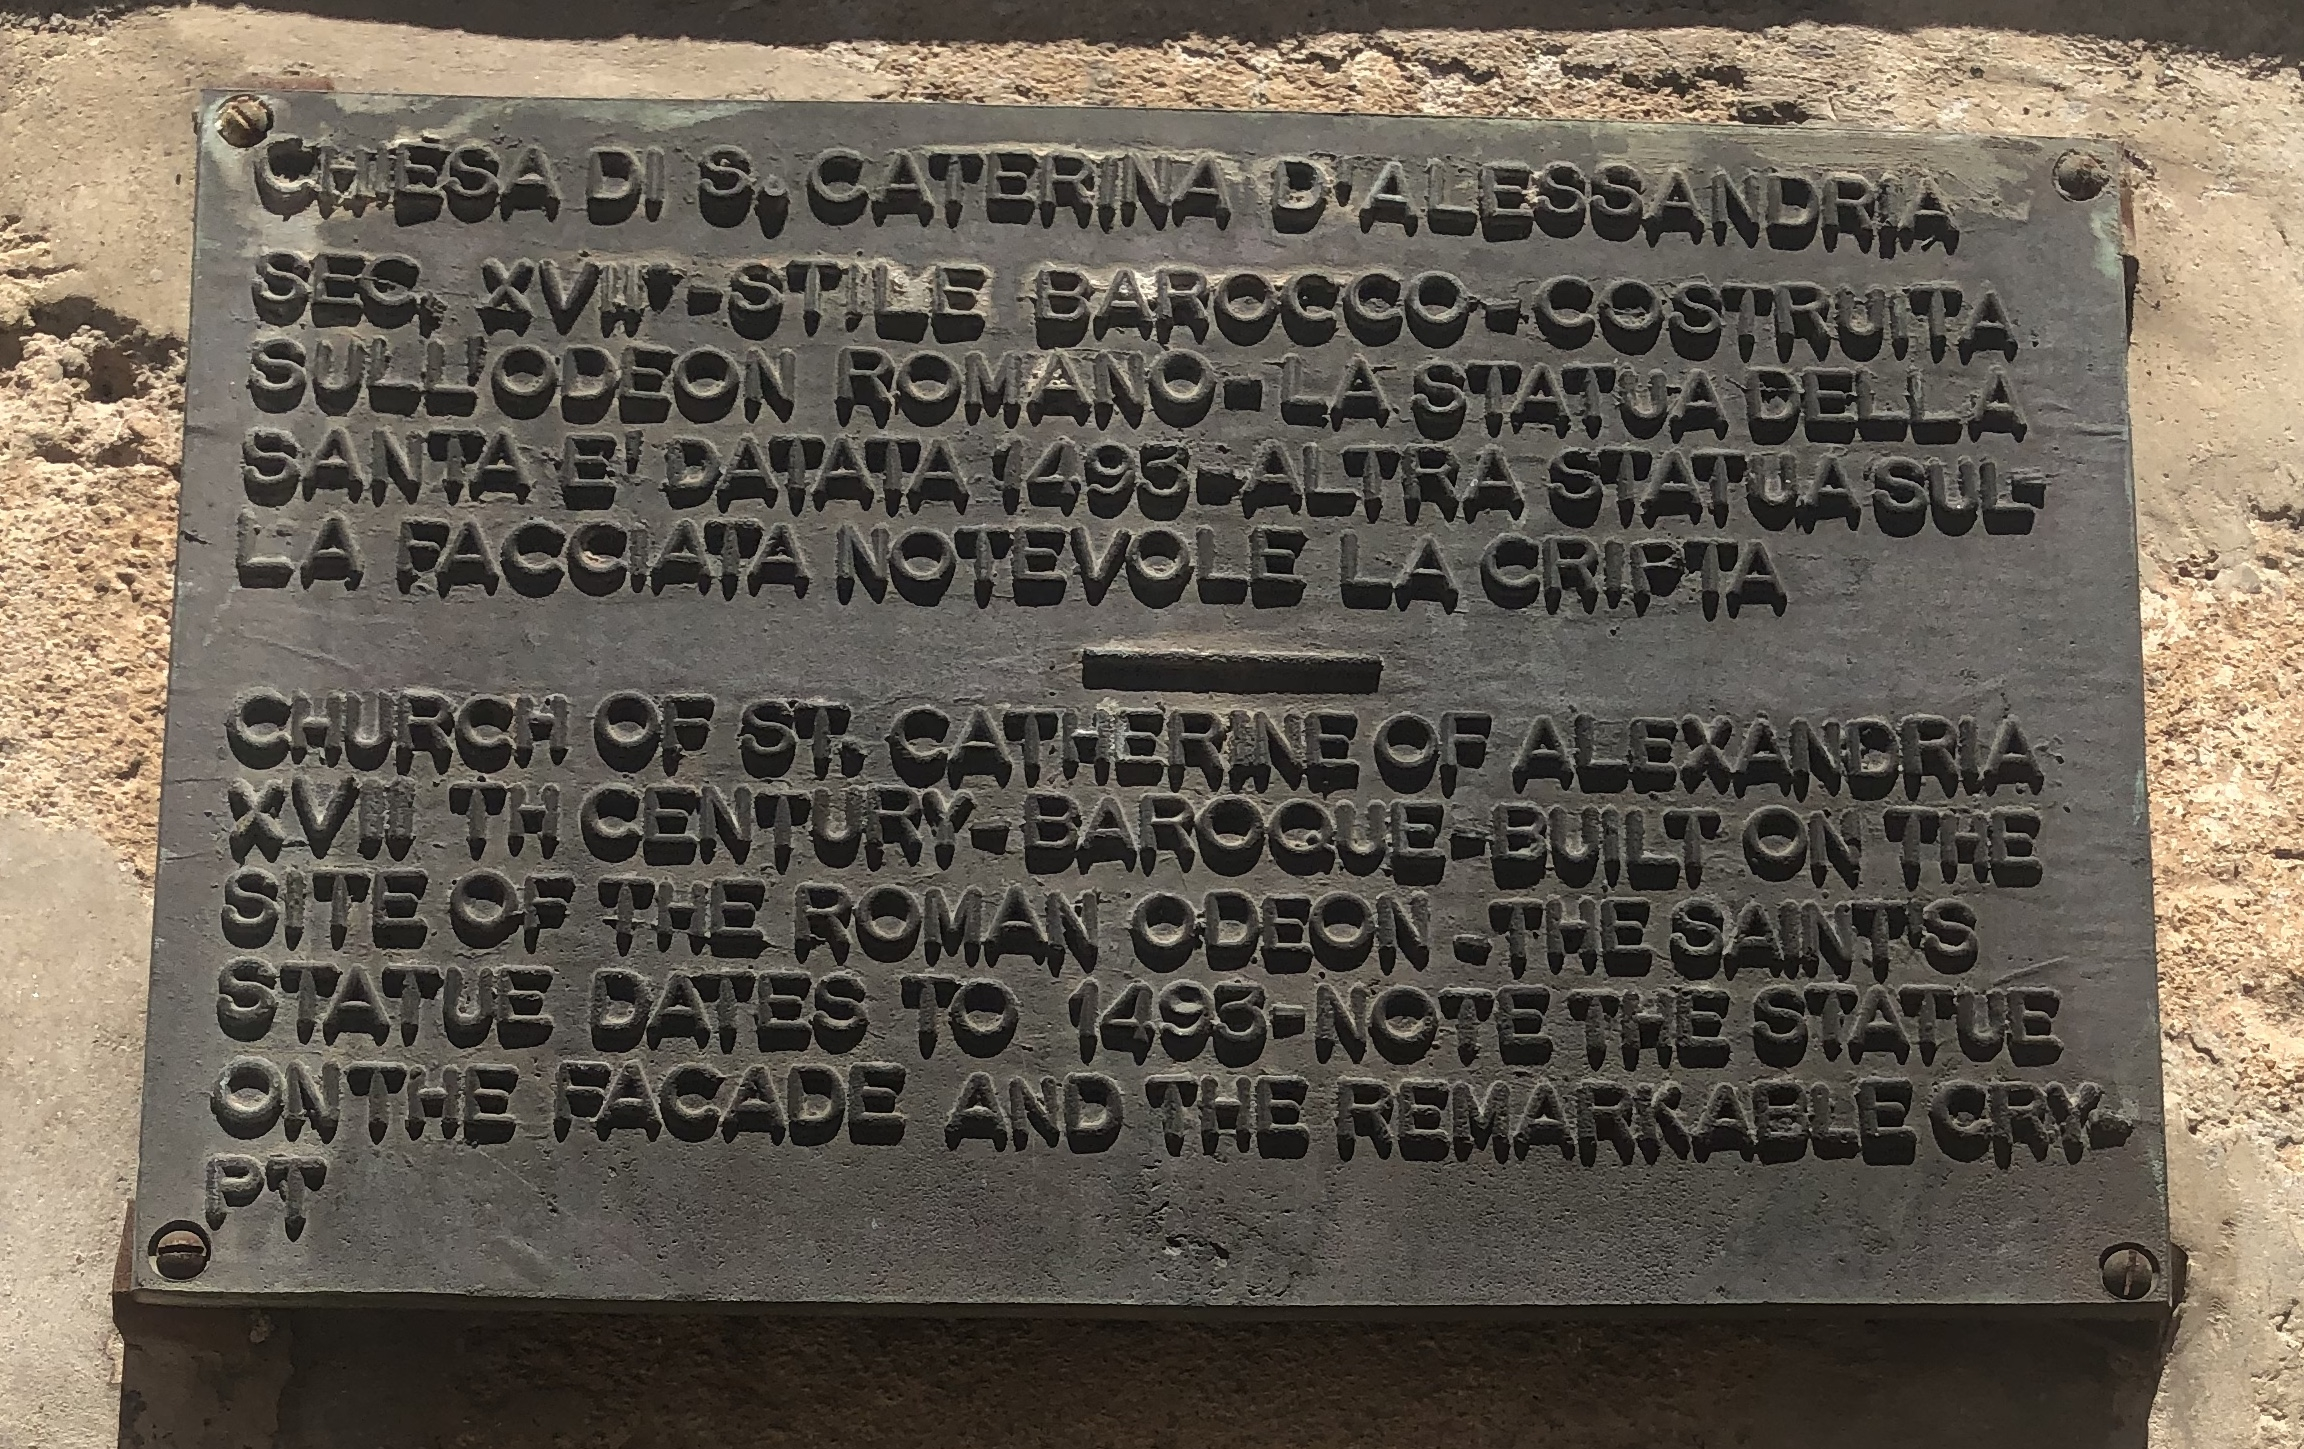 Church of Saint Catherine of Alexandria Marker